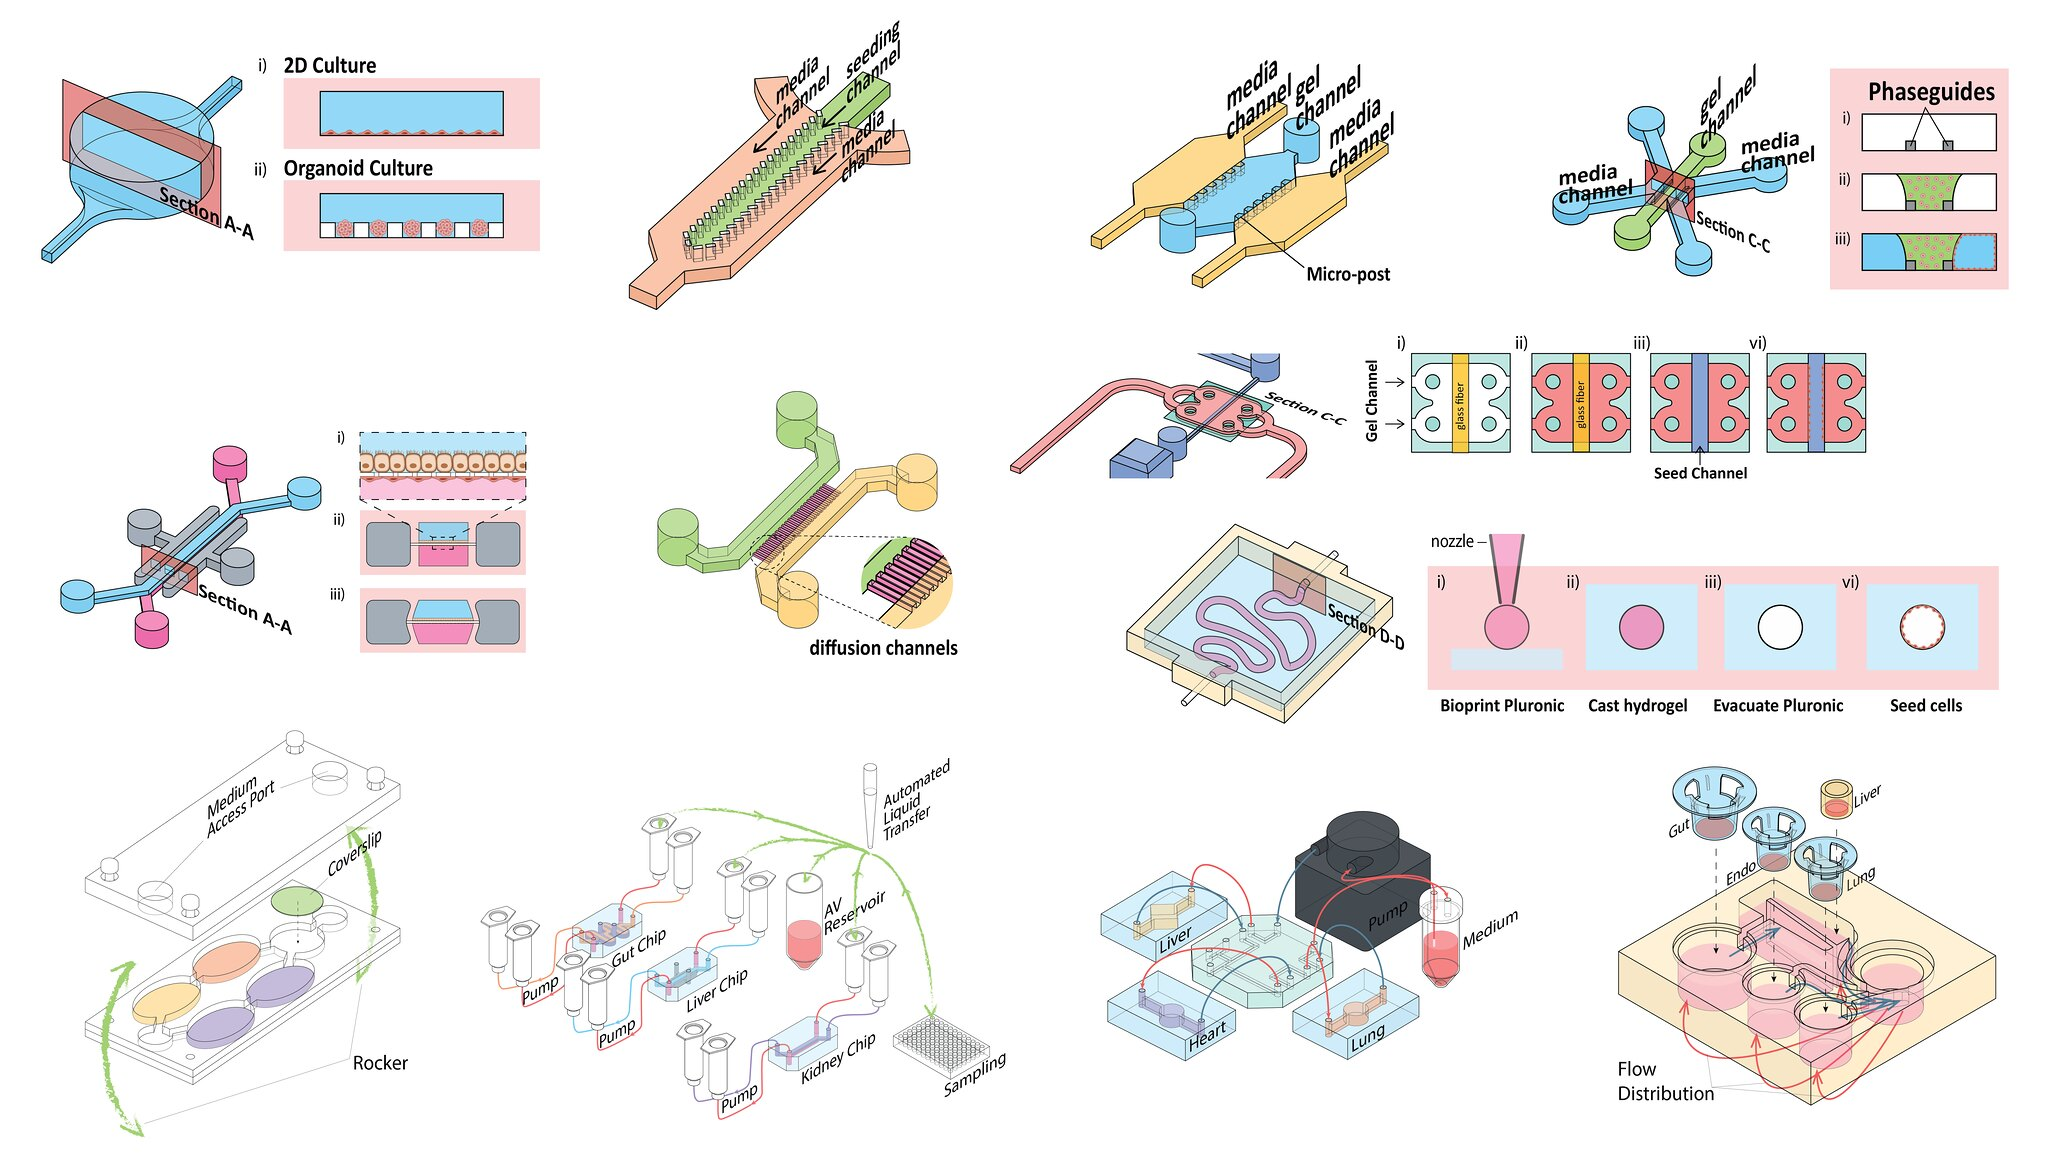 Opinion on Translation of Organ-on-a-chip Platforms Published